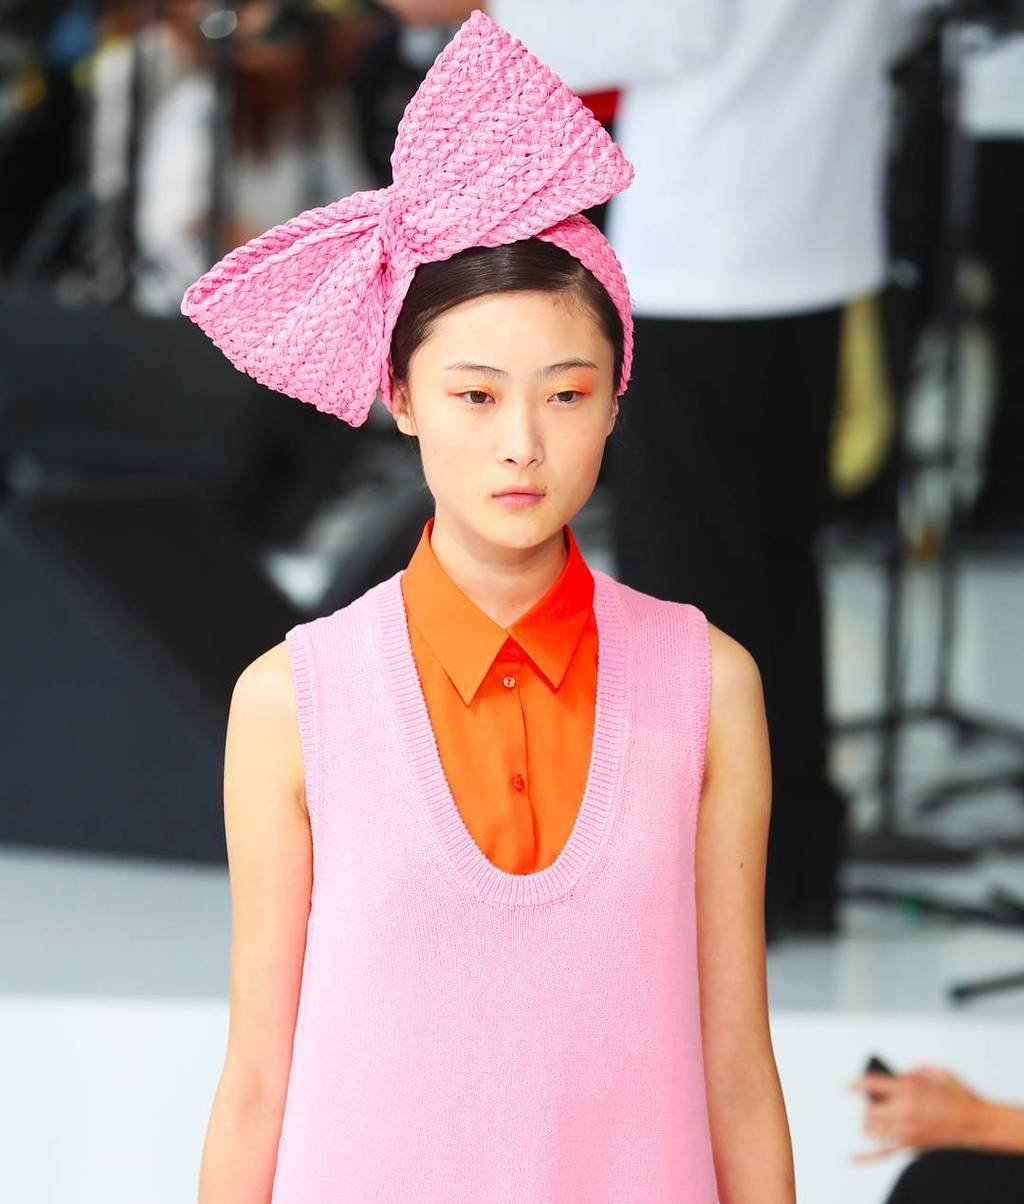 *screenshots for the next time I need a new hair accessory* 🎀💝✨ @delpozo #nyfw image